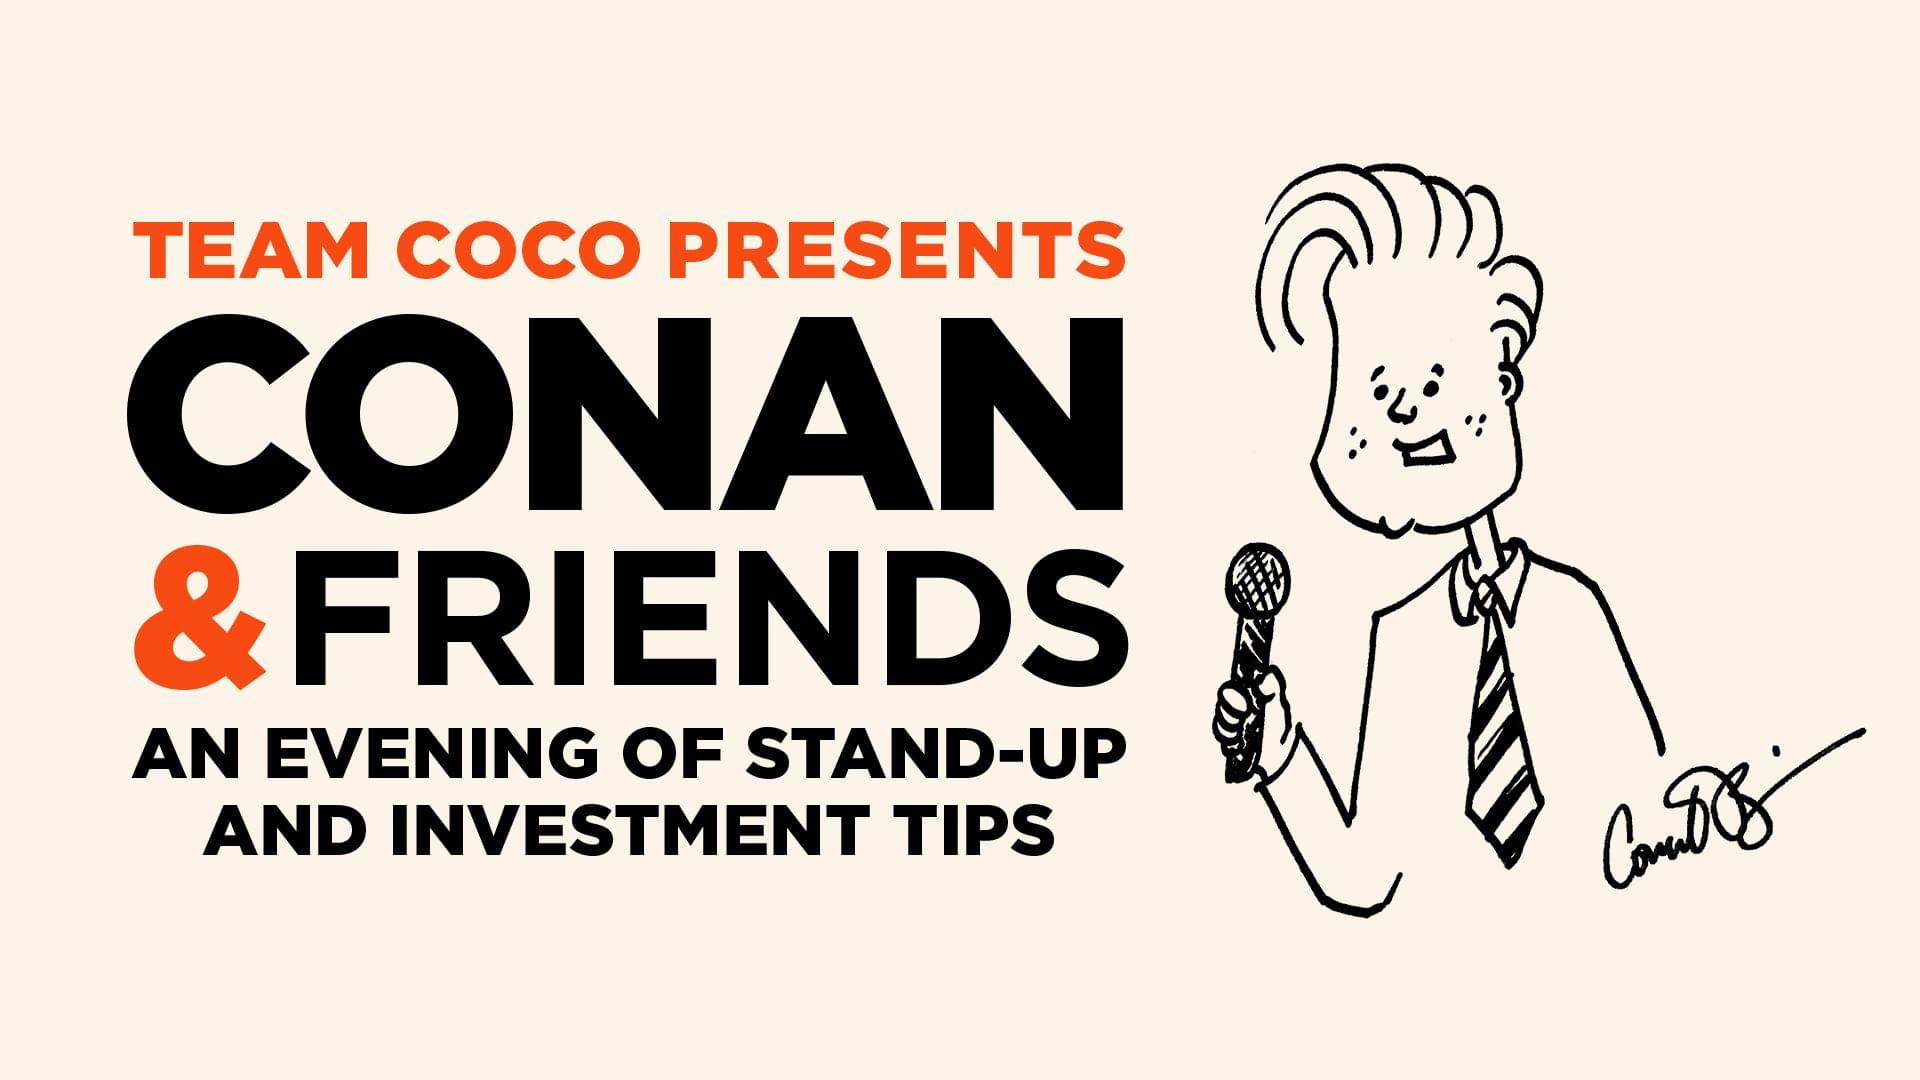 NOV 29 • Conan & Friends: An Evening of Stand-Up & Investment Tips